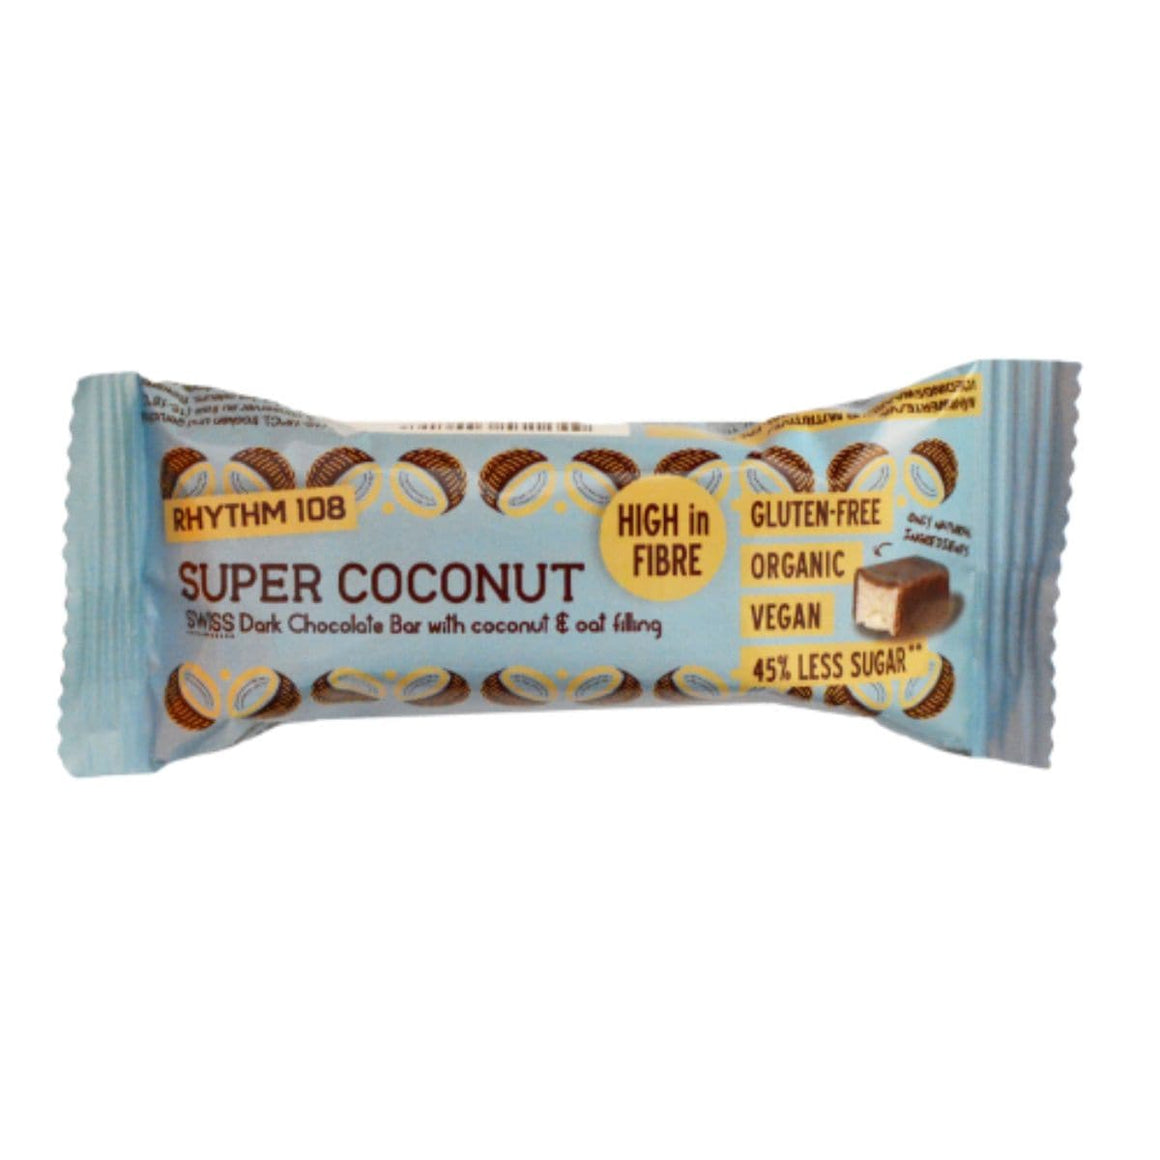 Rhythm 108 Swiss Chocolate Bar - Super Coconut 33g